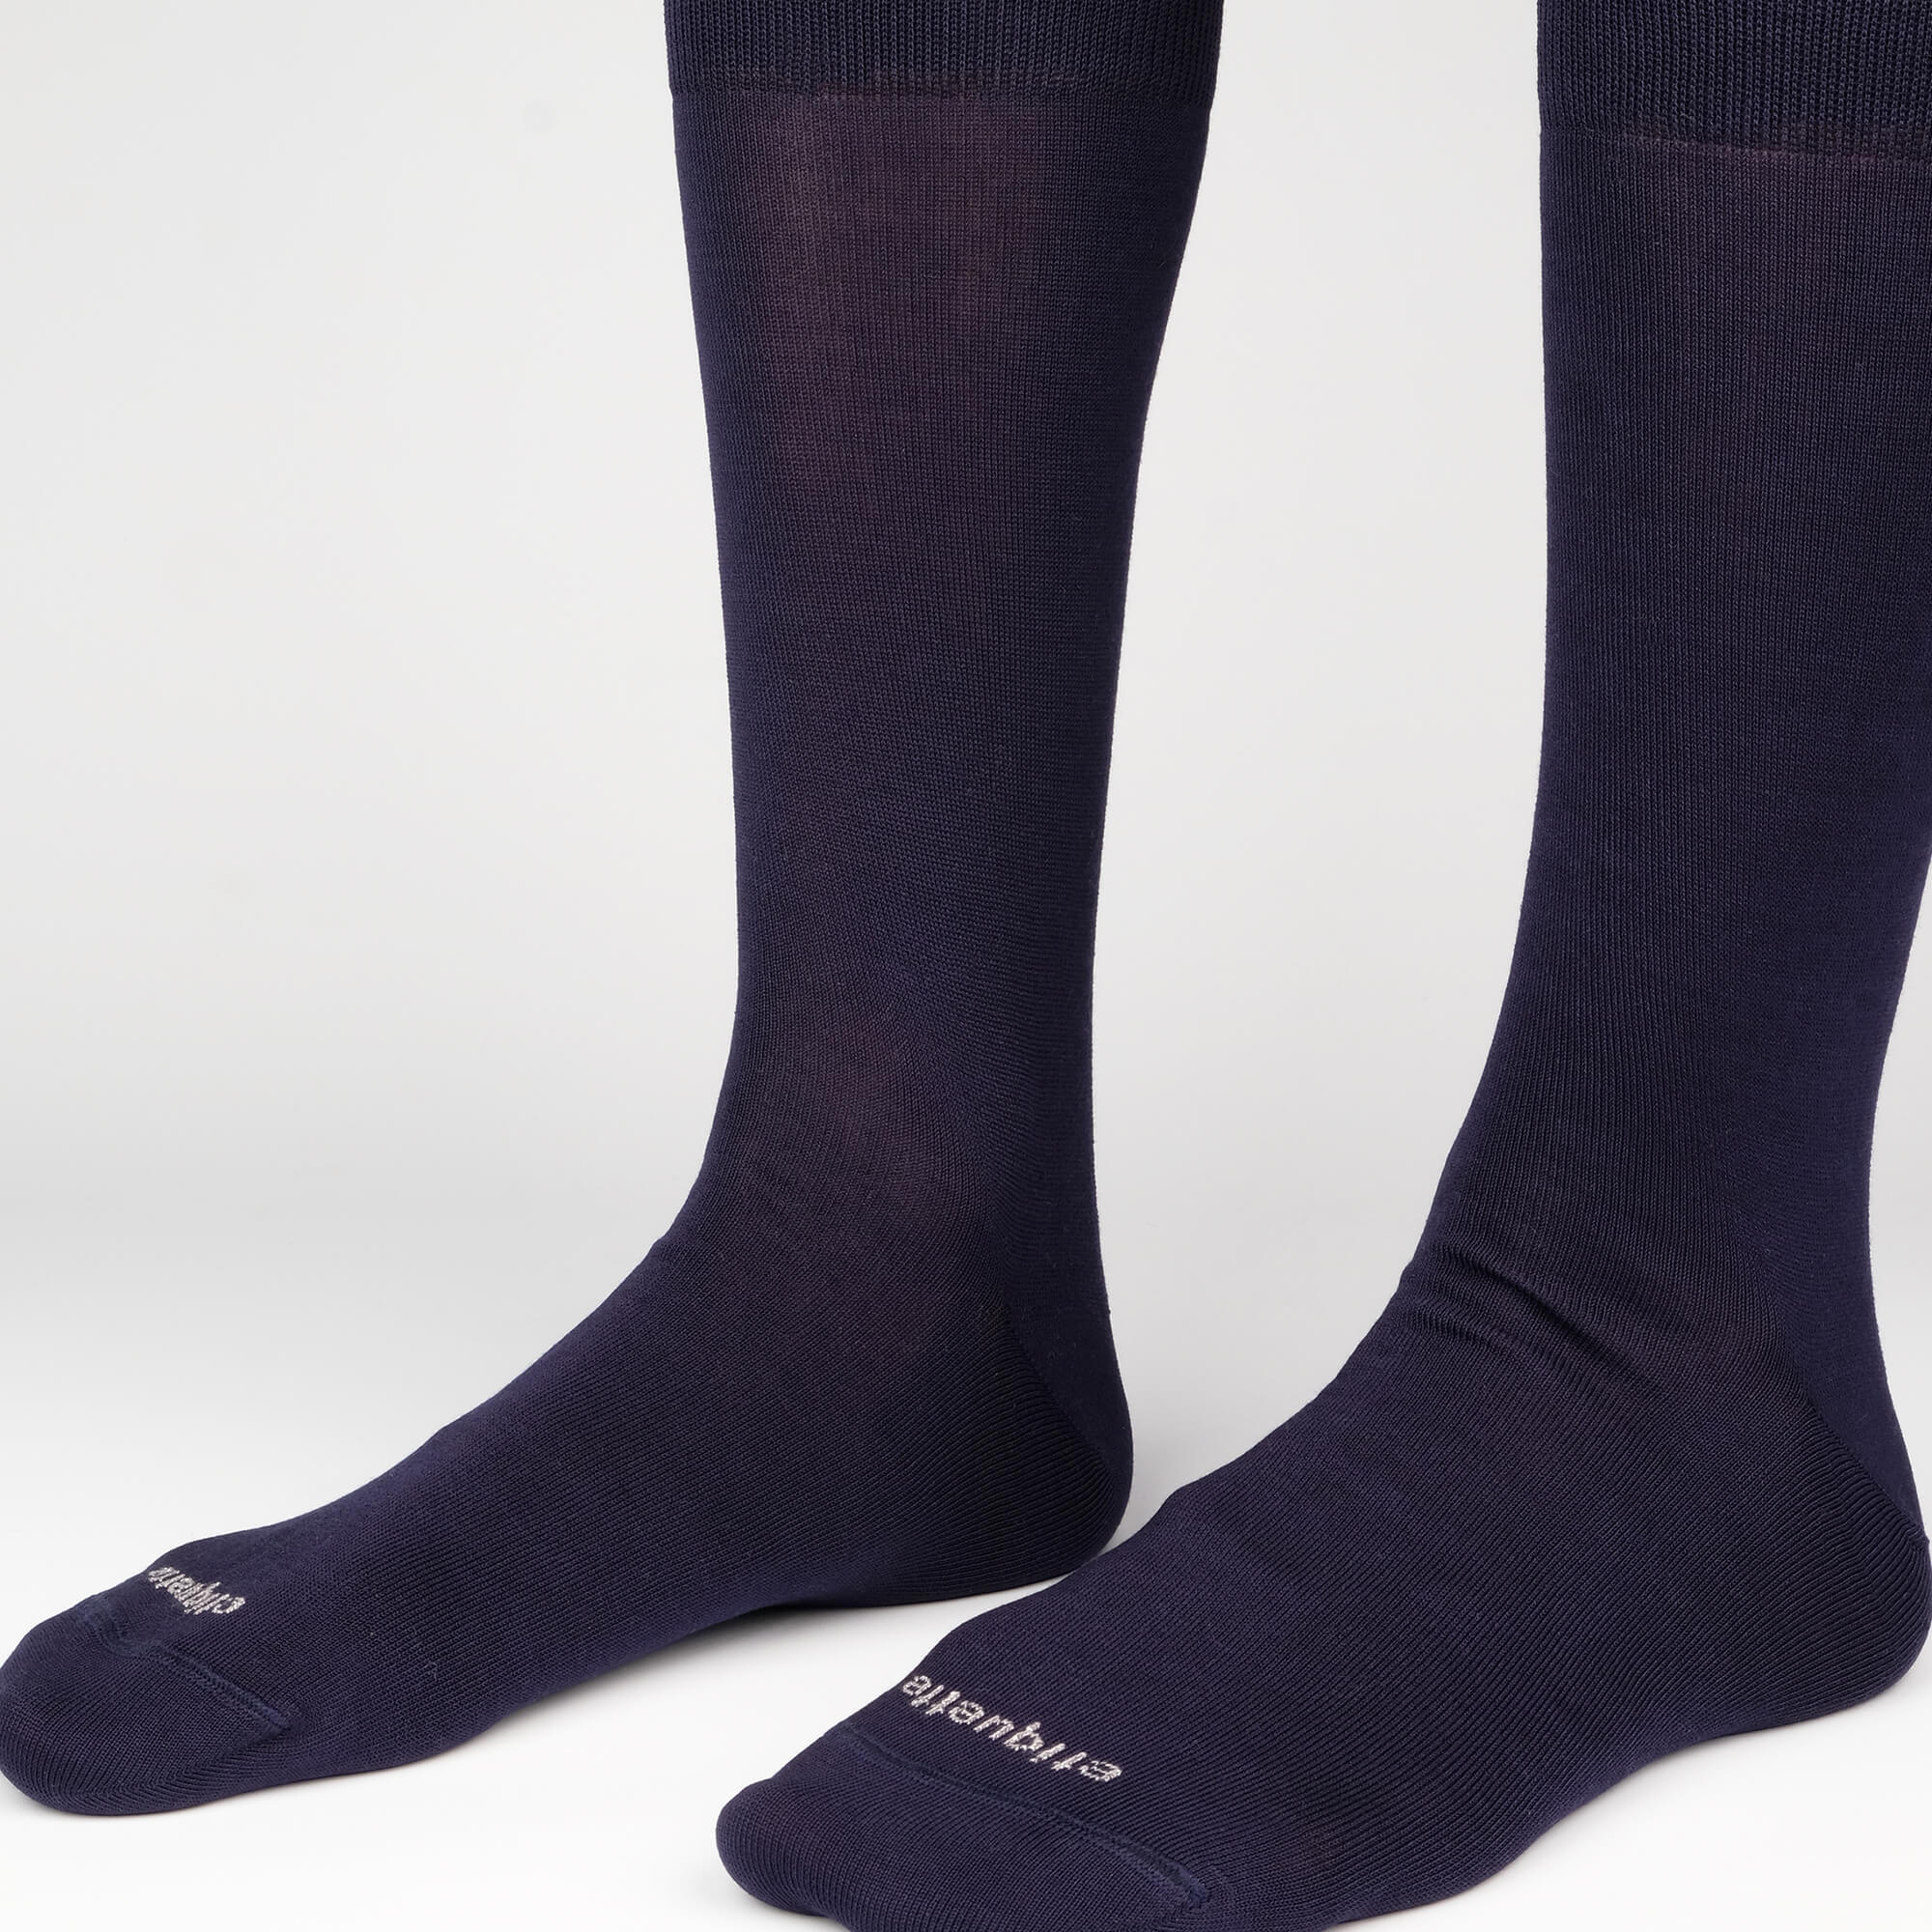 Mens Socks - Basic Luxuries Men's Socks - Navy⎪Etiquette Clothiers